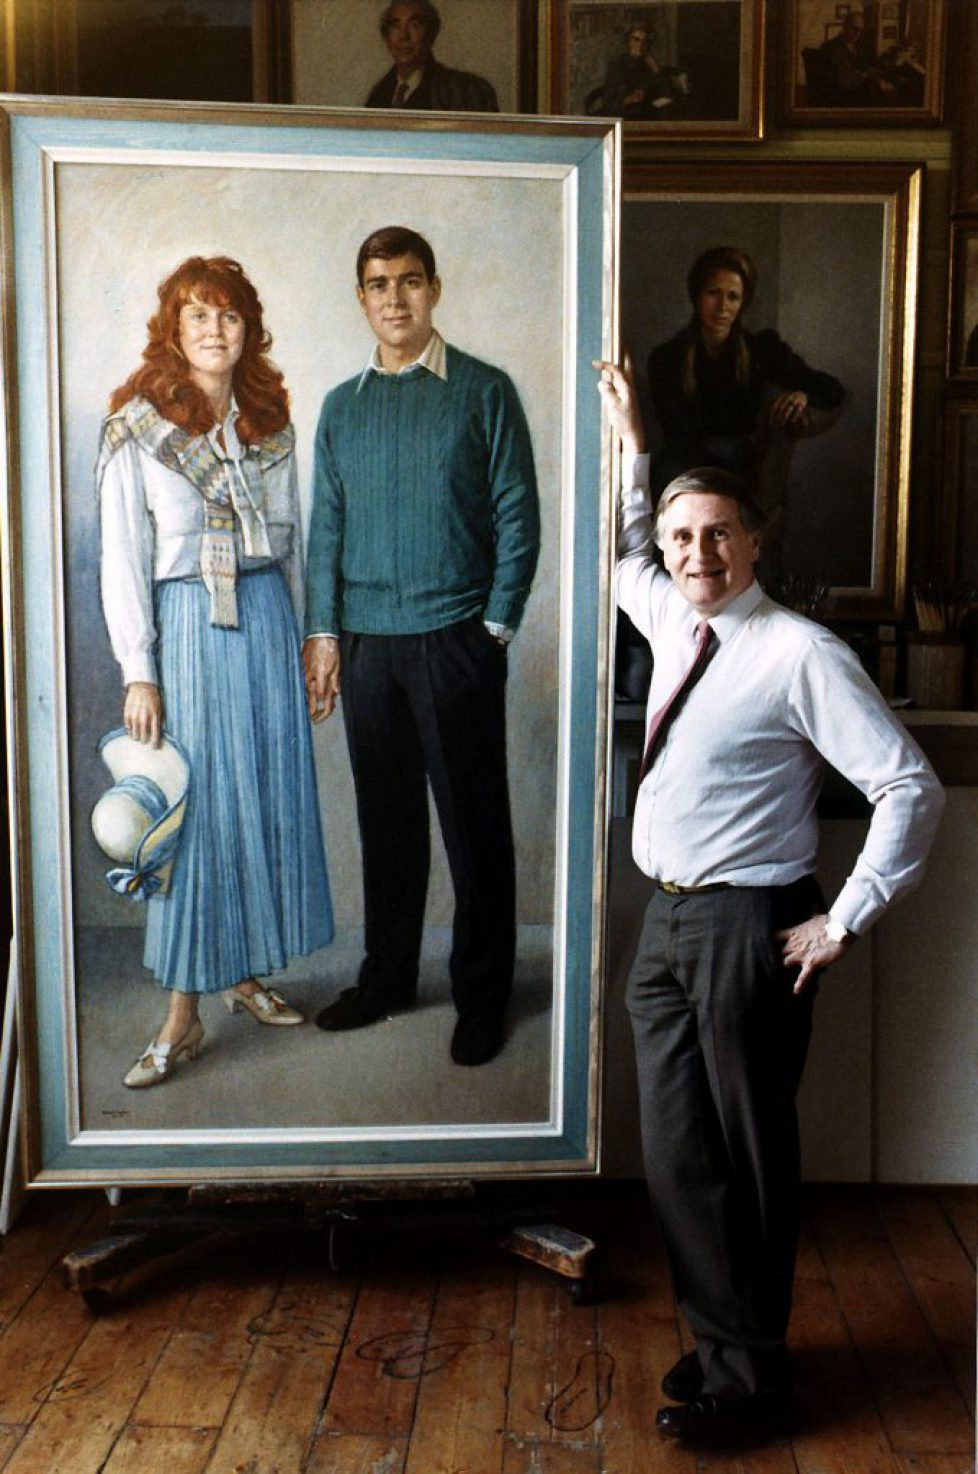 Michael Noakes Royal portrait painter standing in front of his portrait of the Duke and Duchess of York 1988